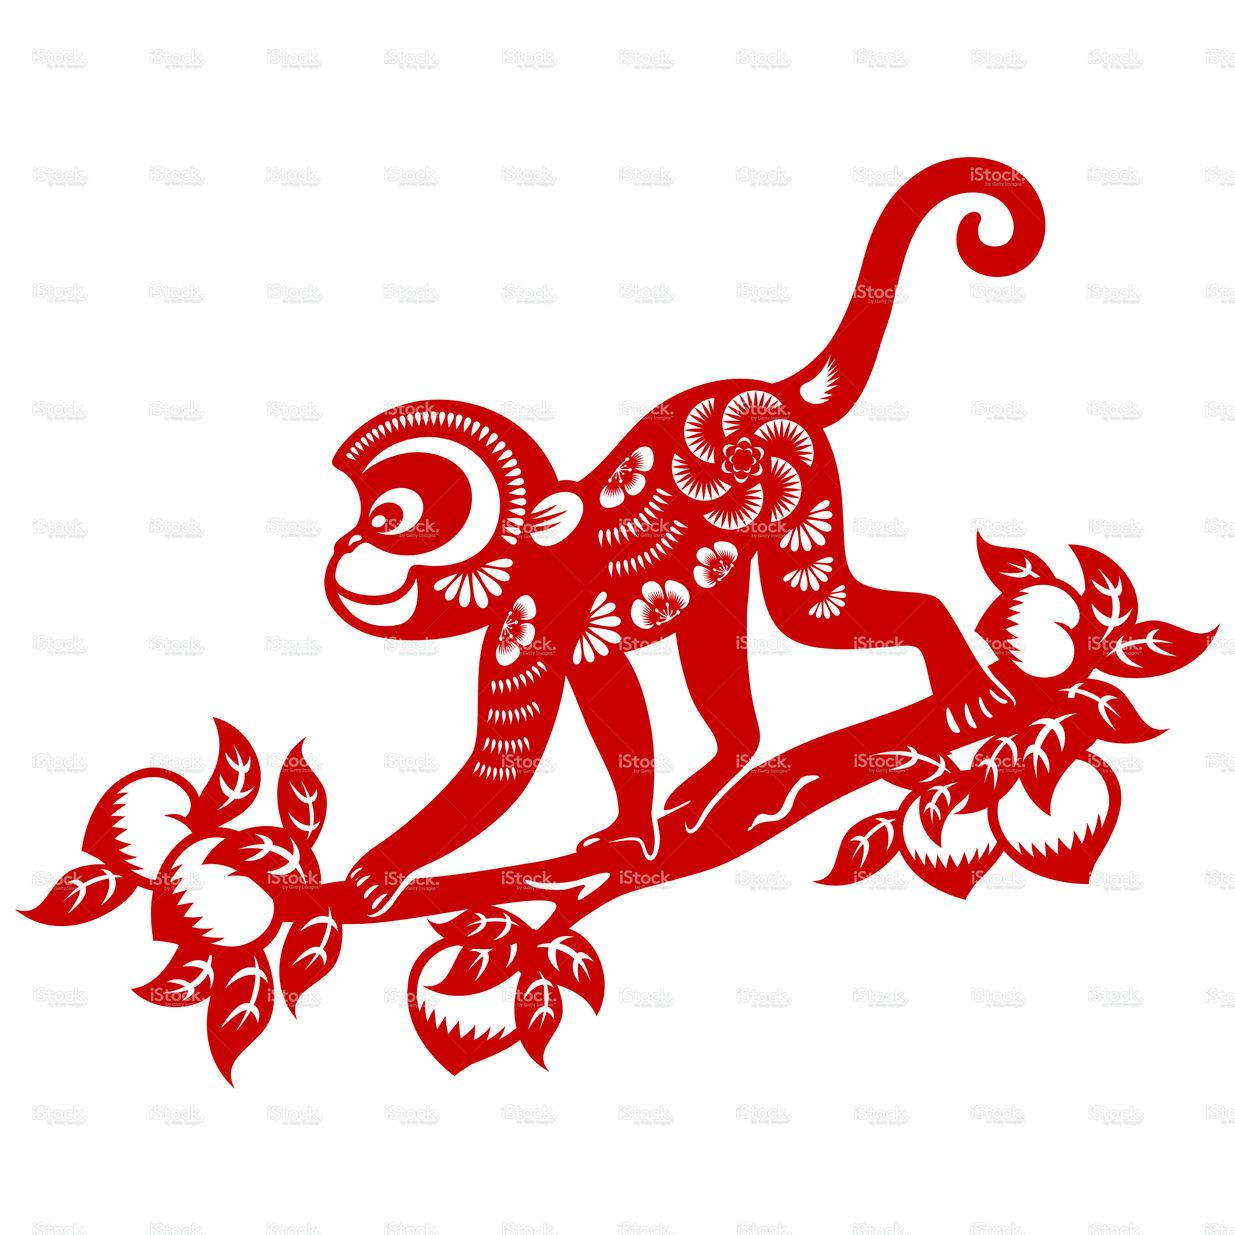 Traditional Papercut Art Of Year Of The Monkey For Chinese New Year Monkey Illustration Monkey Tattoos Year Of The Monkey